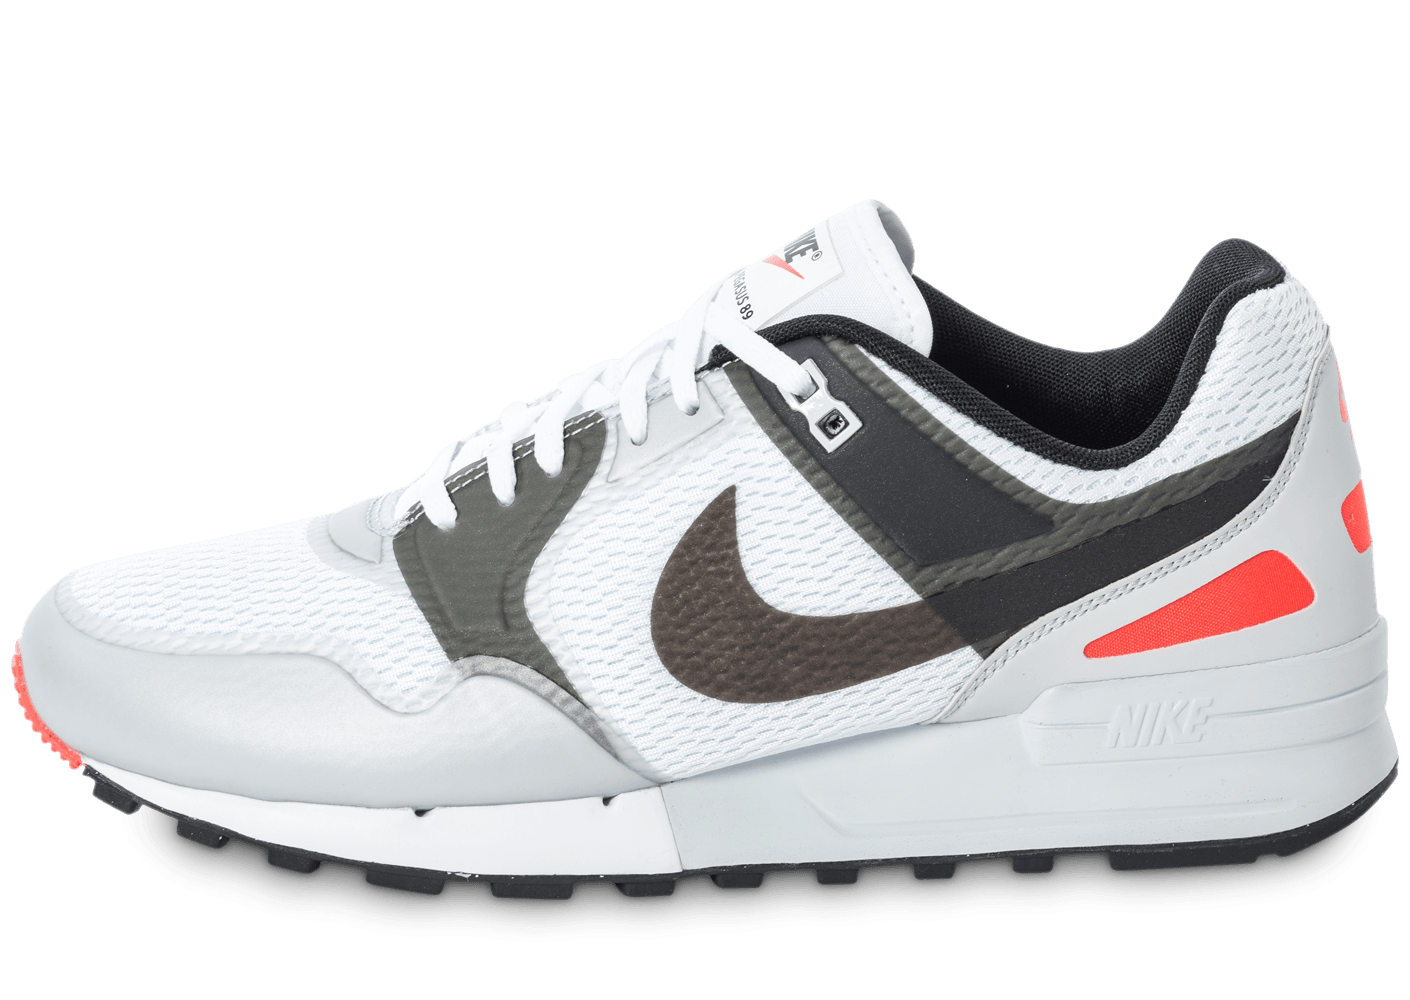 on sale 01463 00f9d Nike Air Pegasus 89 NS Blanche et Grise - Chaussures Baskets homme -  Chausport